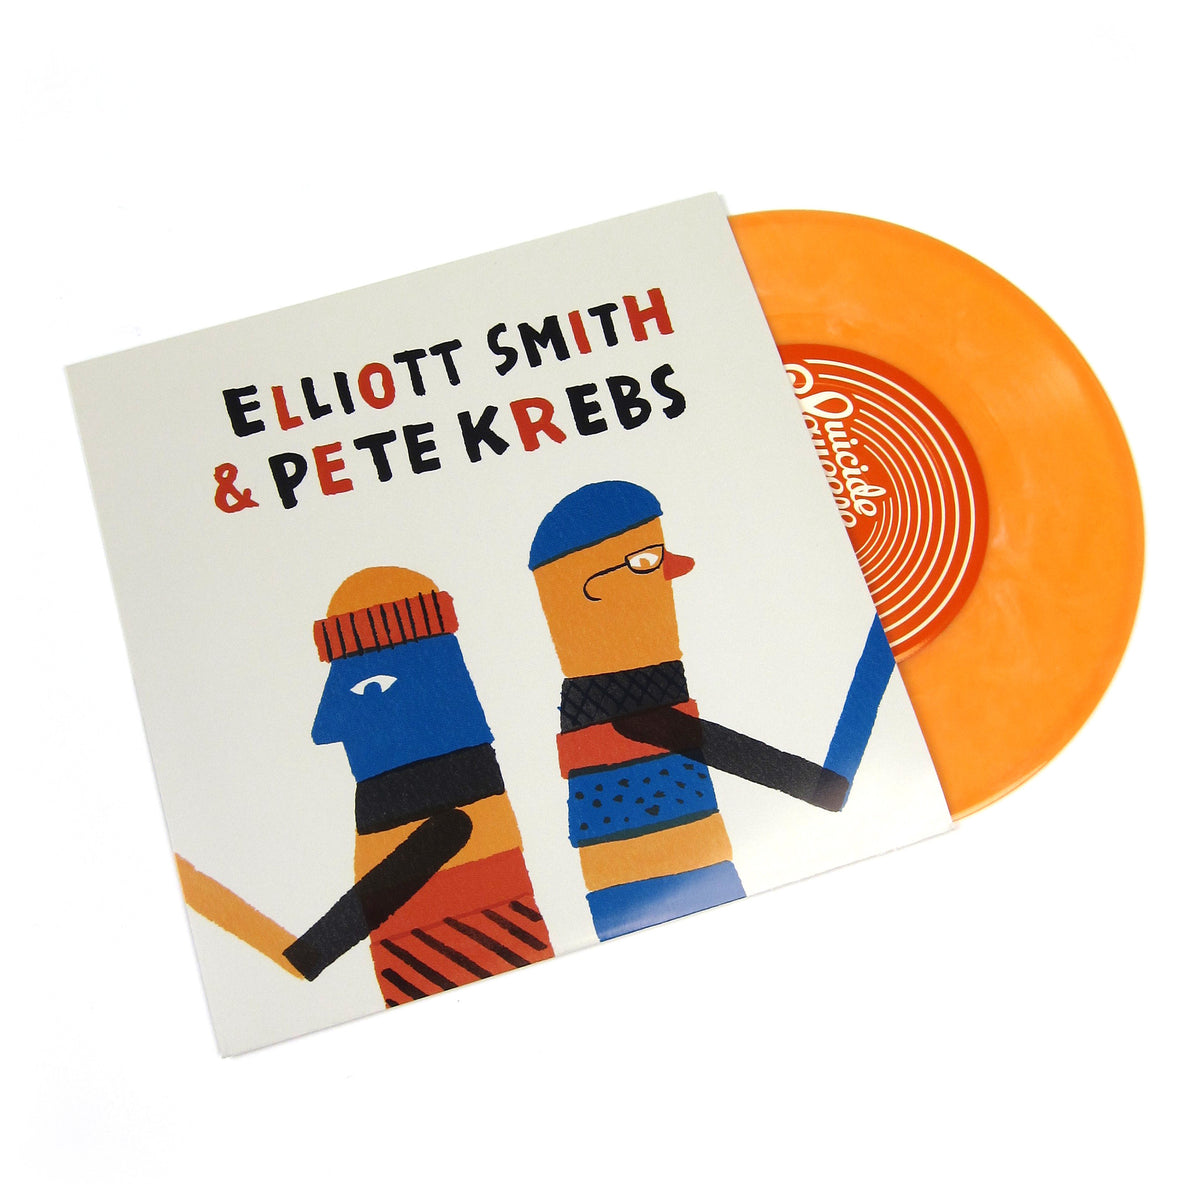 Elliott Smith & Pete Krebs: Shytown / No Confidence Man (Colored Vinyl) Vinyl 7""